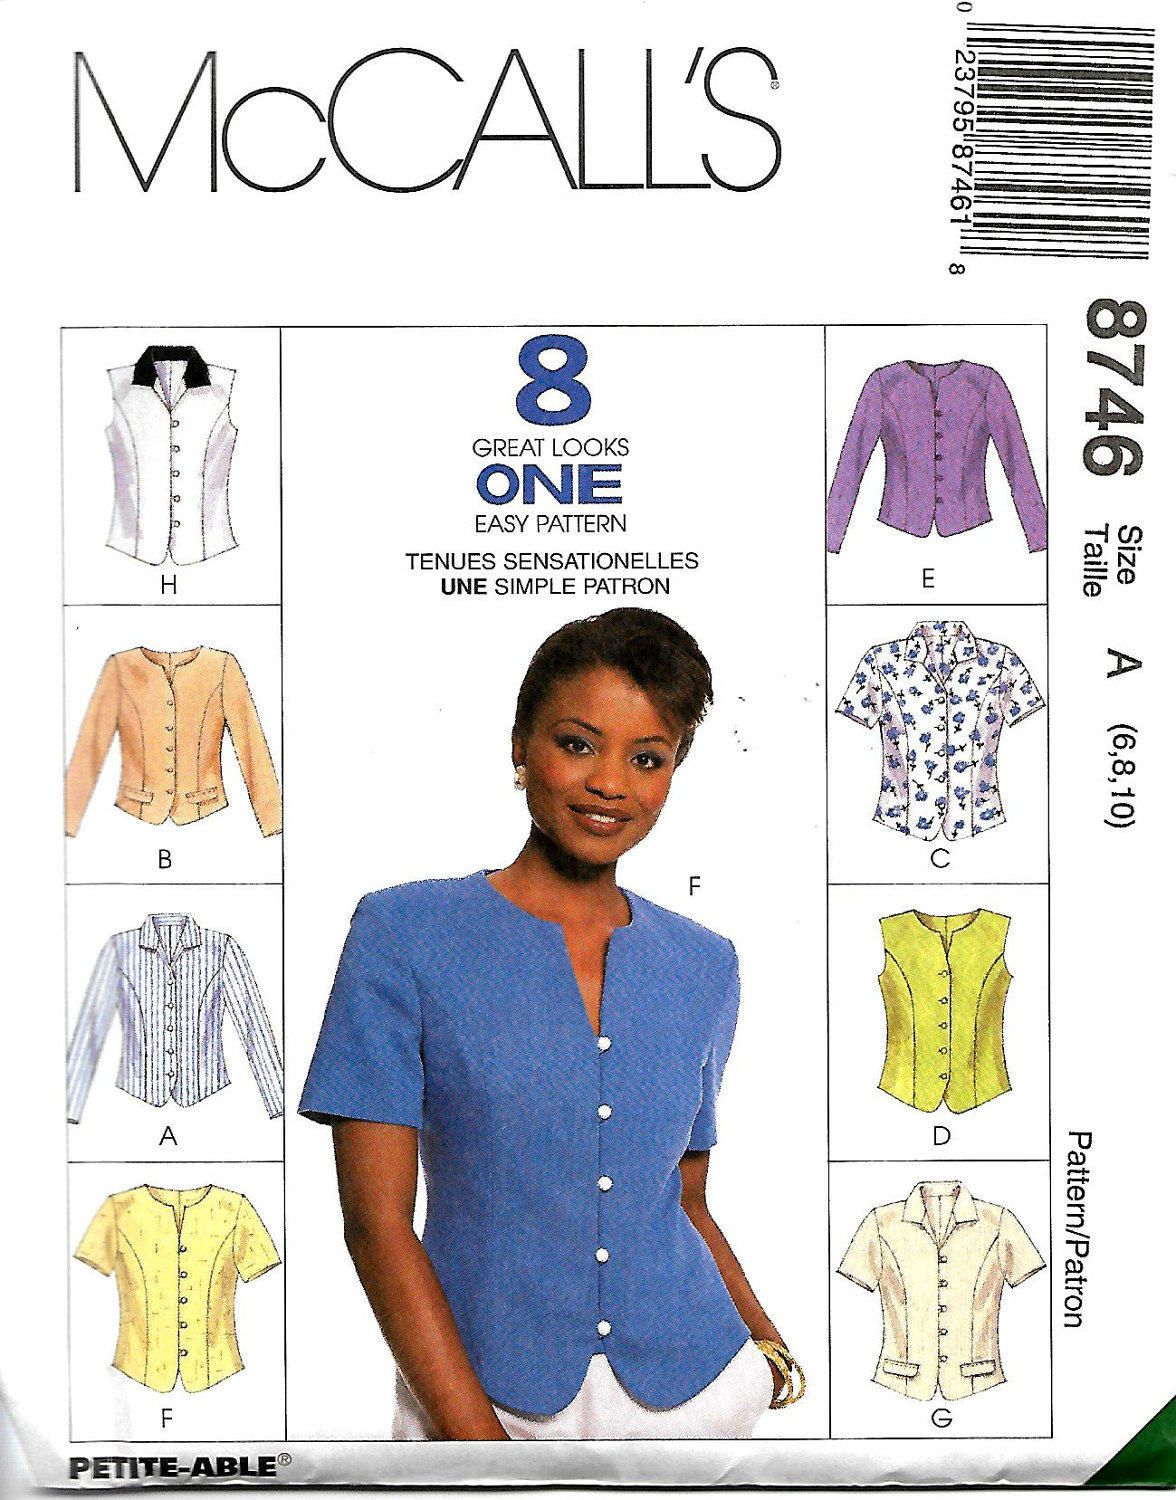 Mccalls 8746 misses tops sewing pattern 8 great looks size 6 10 mccalls 8746 misses tops sewing pattern 8 great looks size 6 10 jeuxipadfo Image collections